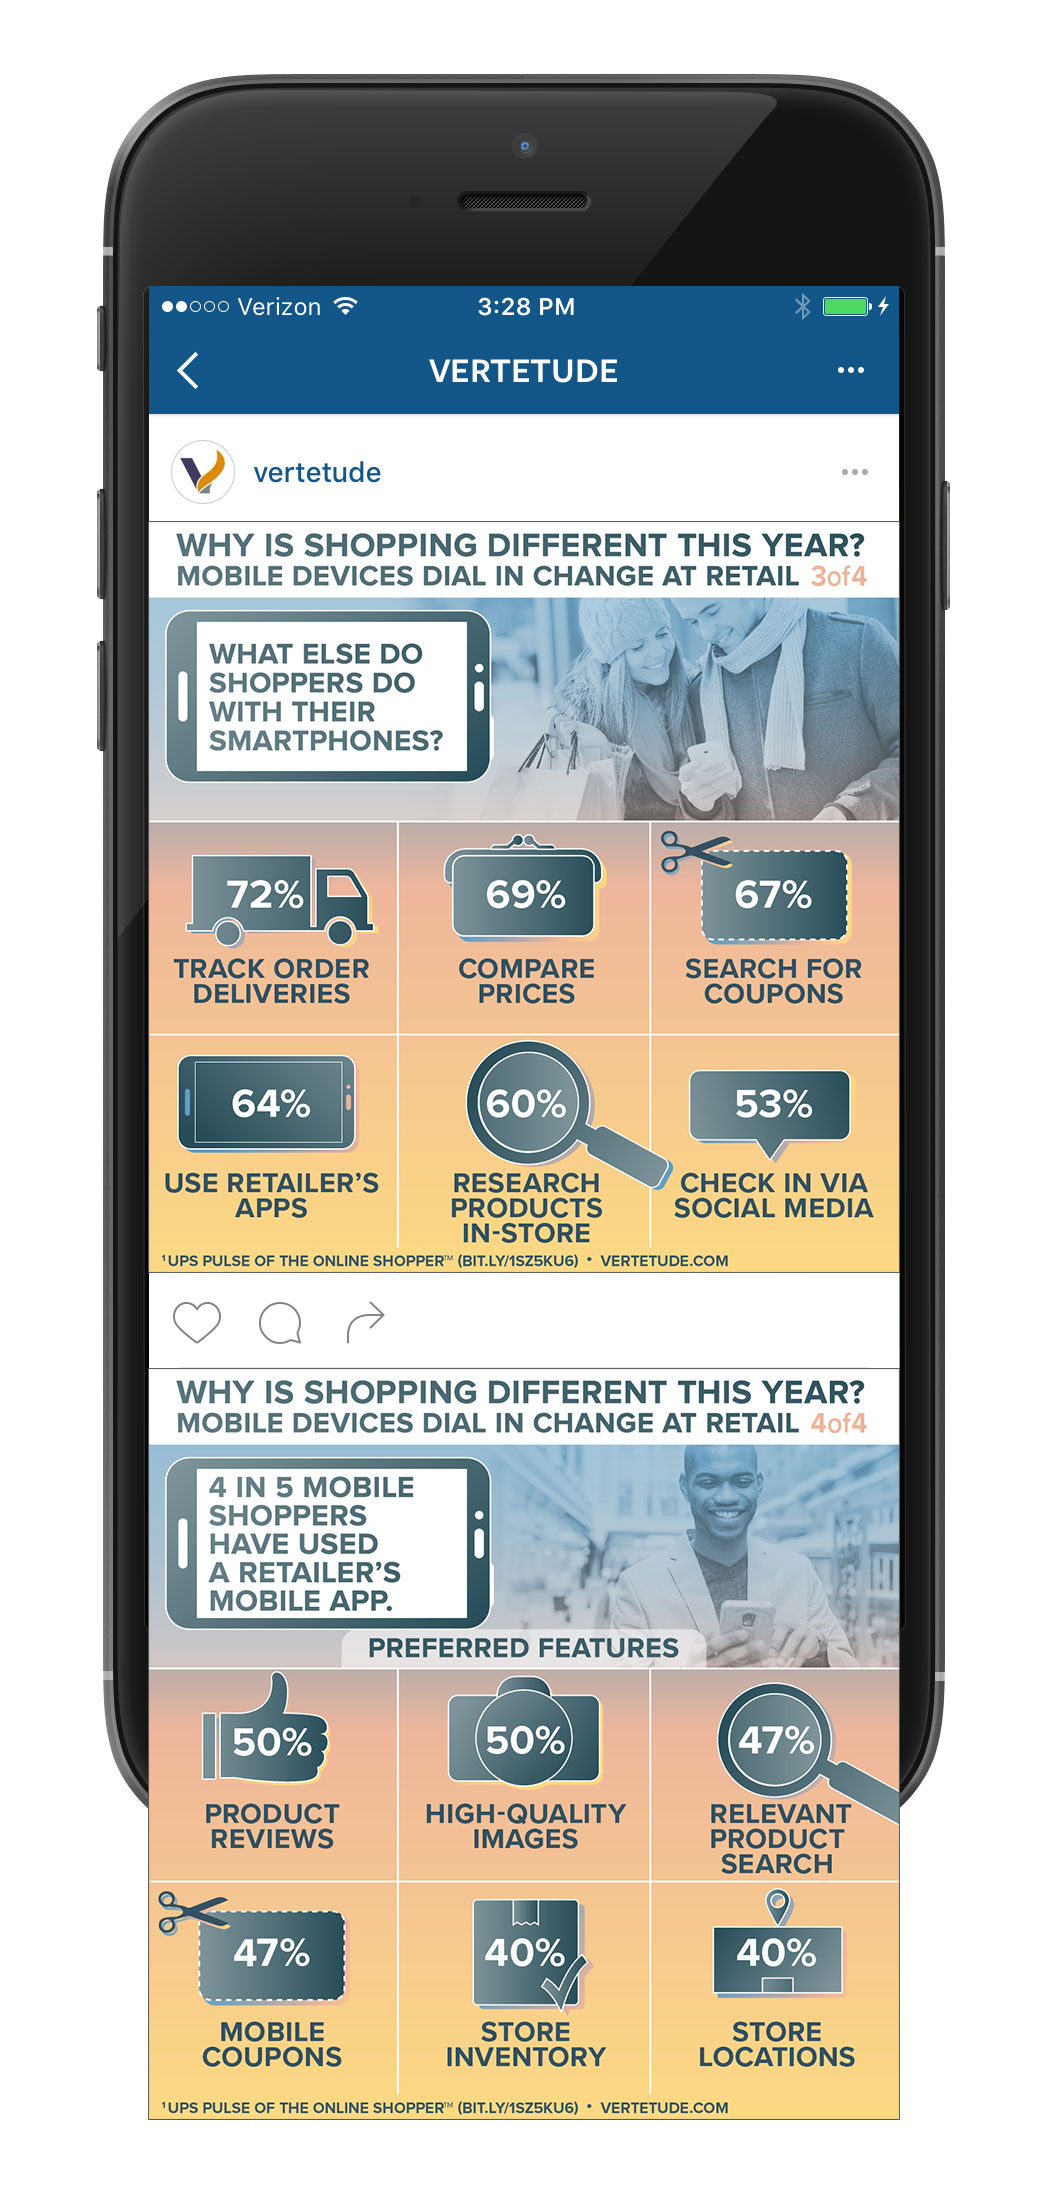 Infographic of mobile devices changing retail, Instagram mobile mockup 2